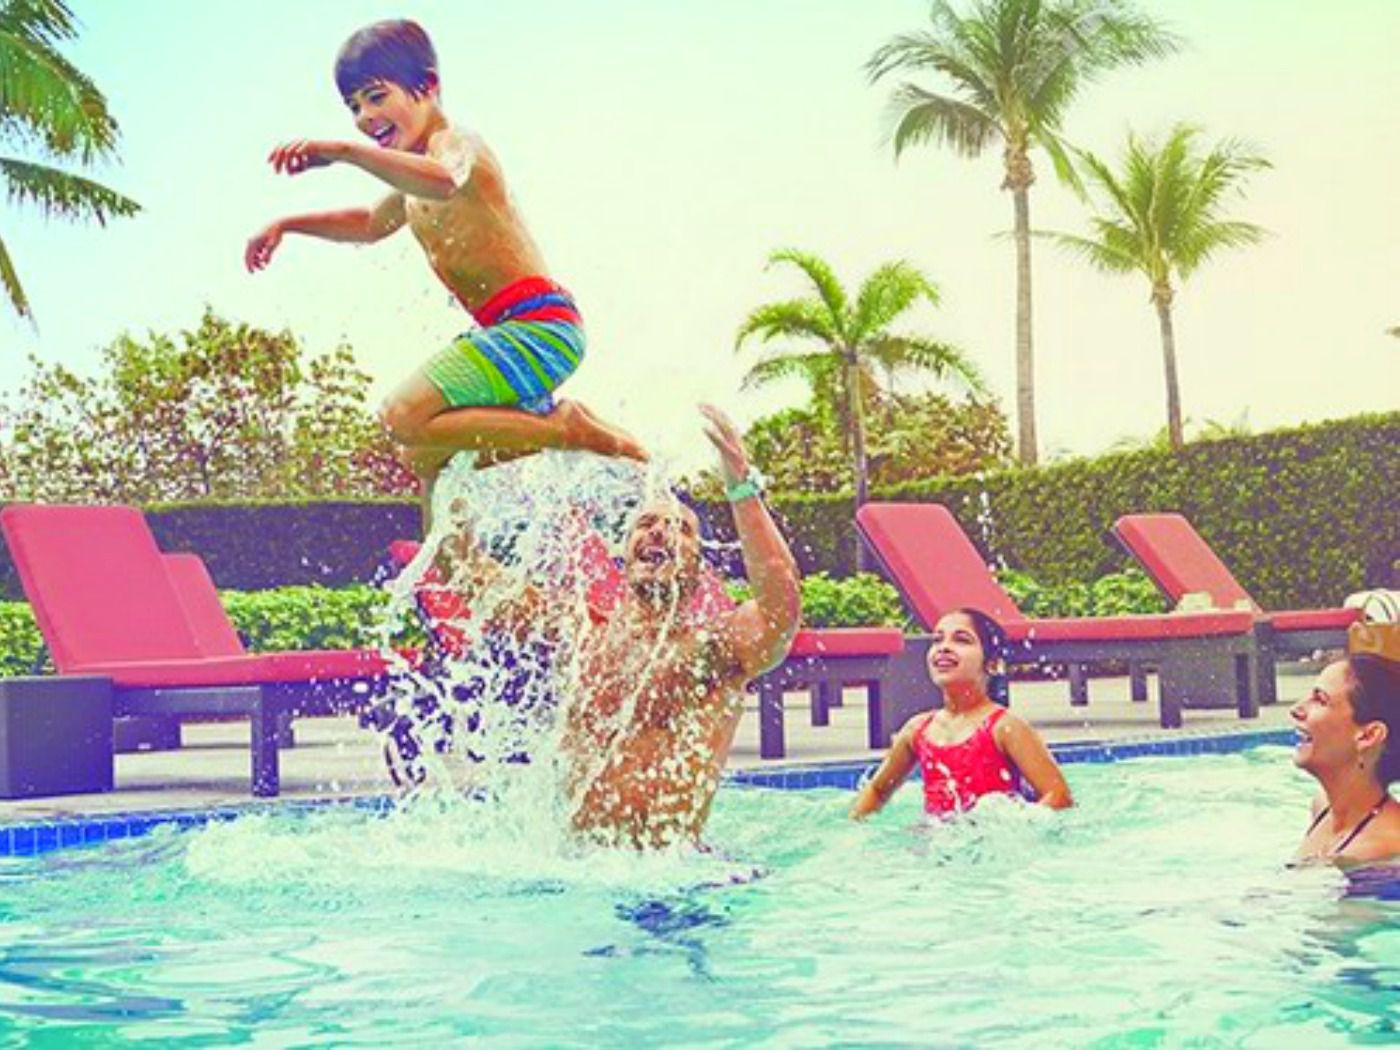 Hilton Hotel Brands For Family Vacations